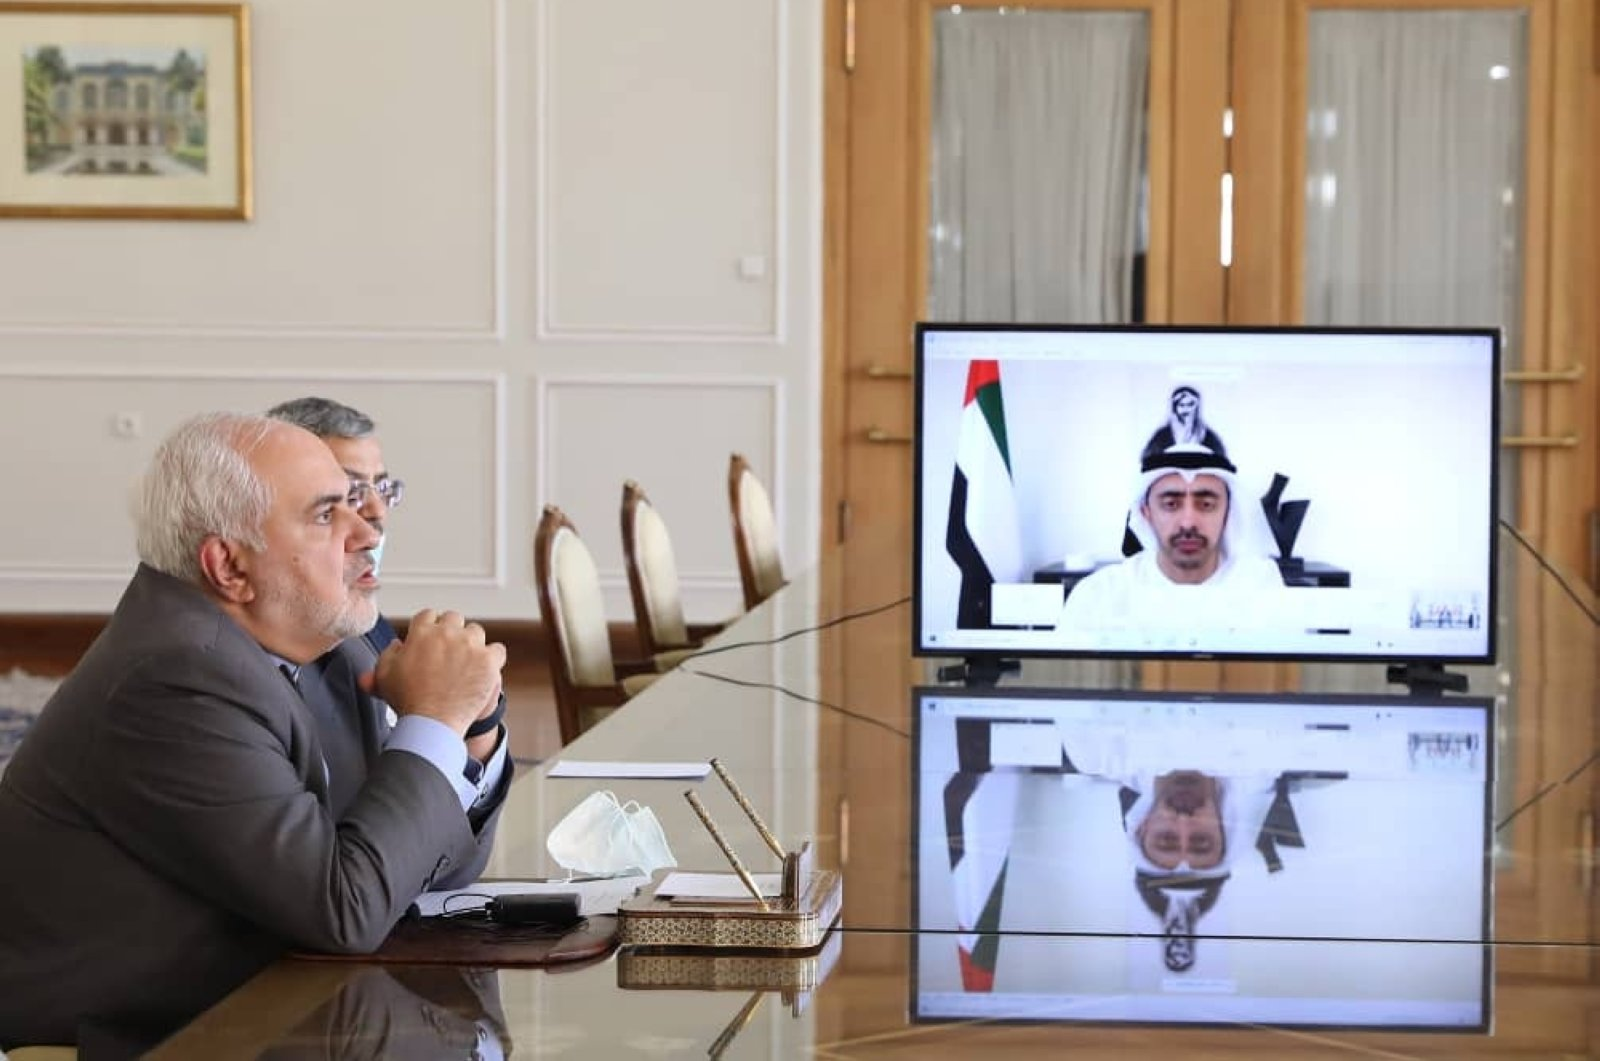 Foreign Minister Mohammad Javad Zarif (L) attends a video meeting with UAE's Foreign Minister Sheikh Abdullah bin Zayed al-Nahyan from Tehran, Iran, Aug. 2, 2020. (Iranian Ministry of Foreign Affairs via AFP)